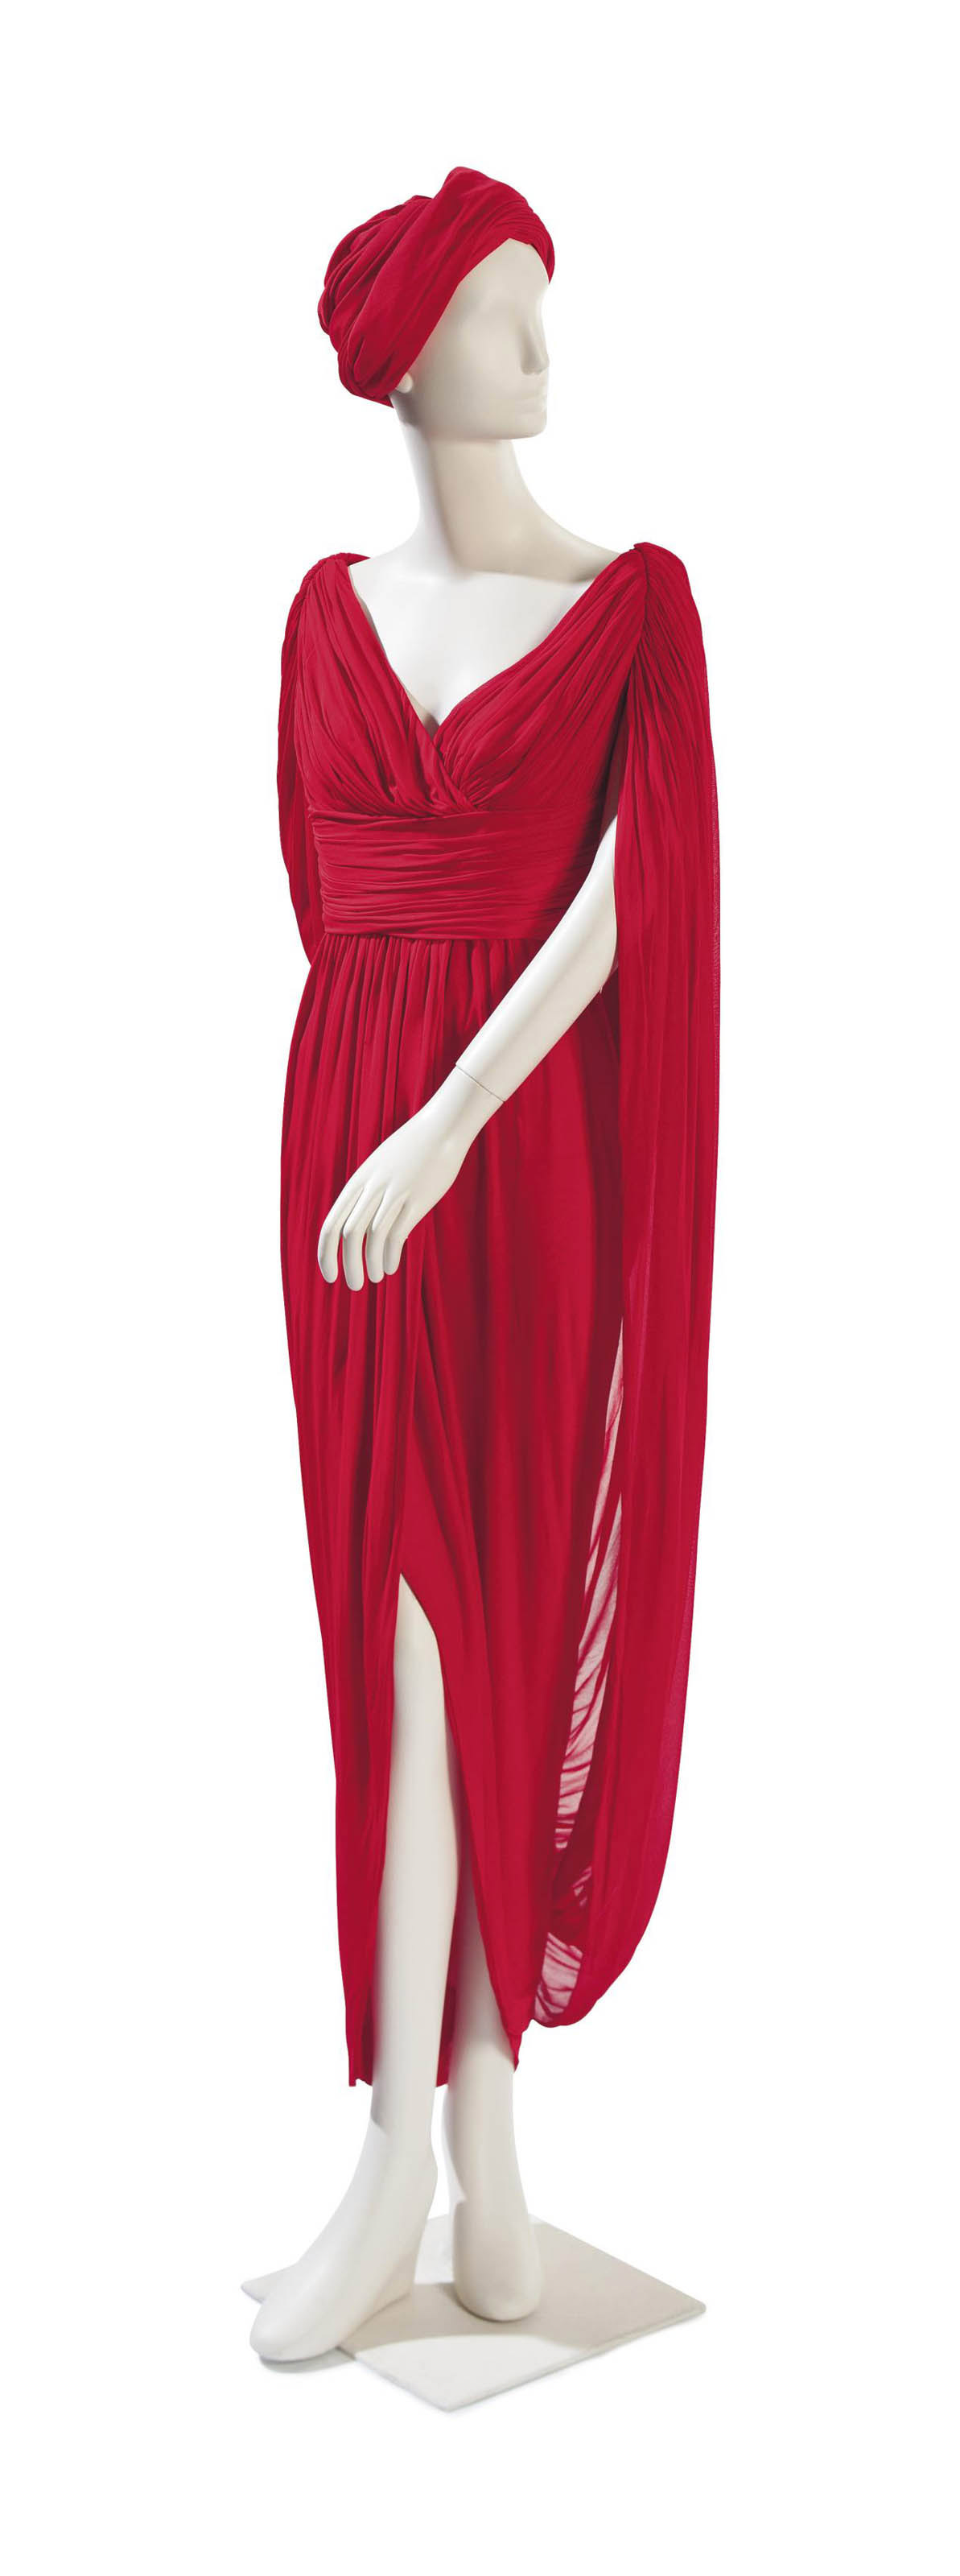 A HALSTON SCARLET SILK JERSEY DRAPED EVENING DRESS AND TURBAN